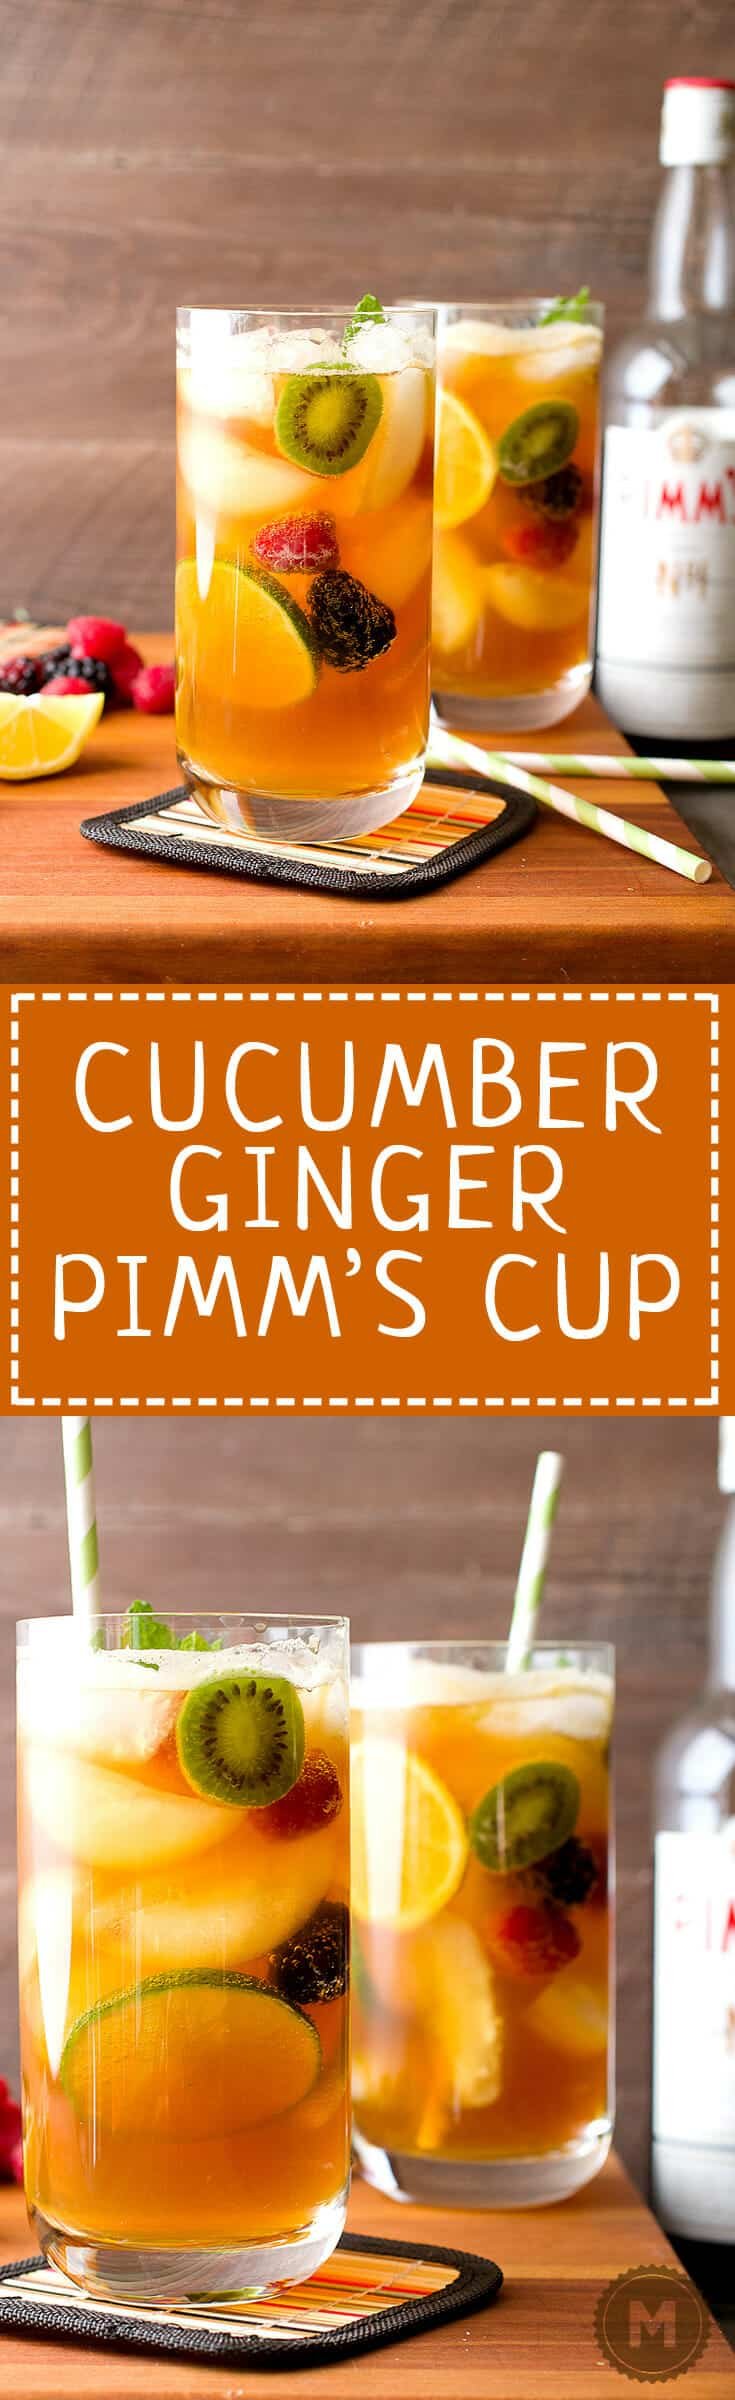 Cucumber Ginger Pimm's Cup: This is my official drink of summer. Light, fruity, refreshing, and just a few ingredients. Make a few of these and life is good!   macheesmo.com